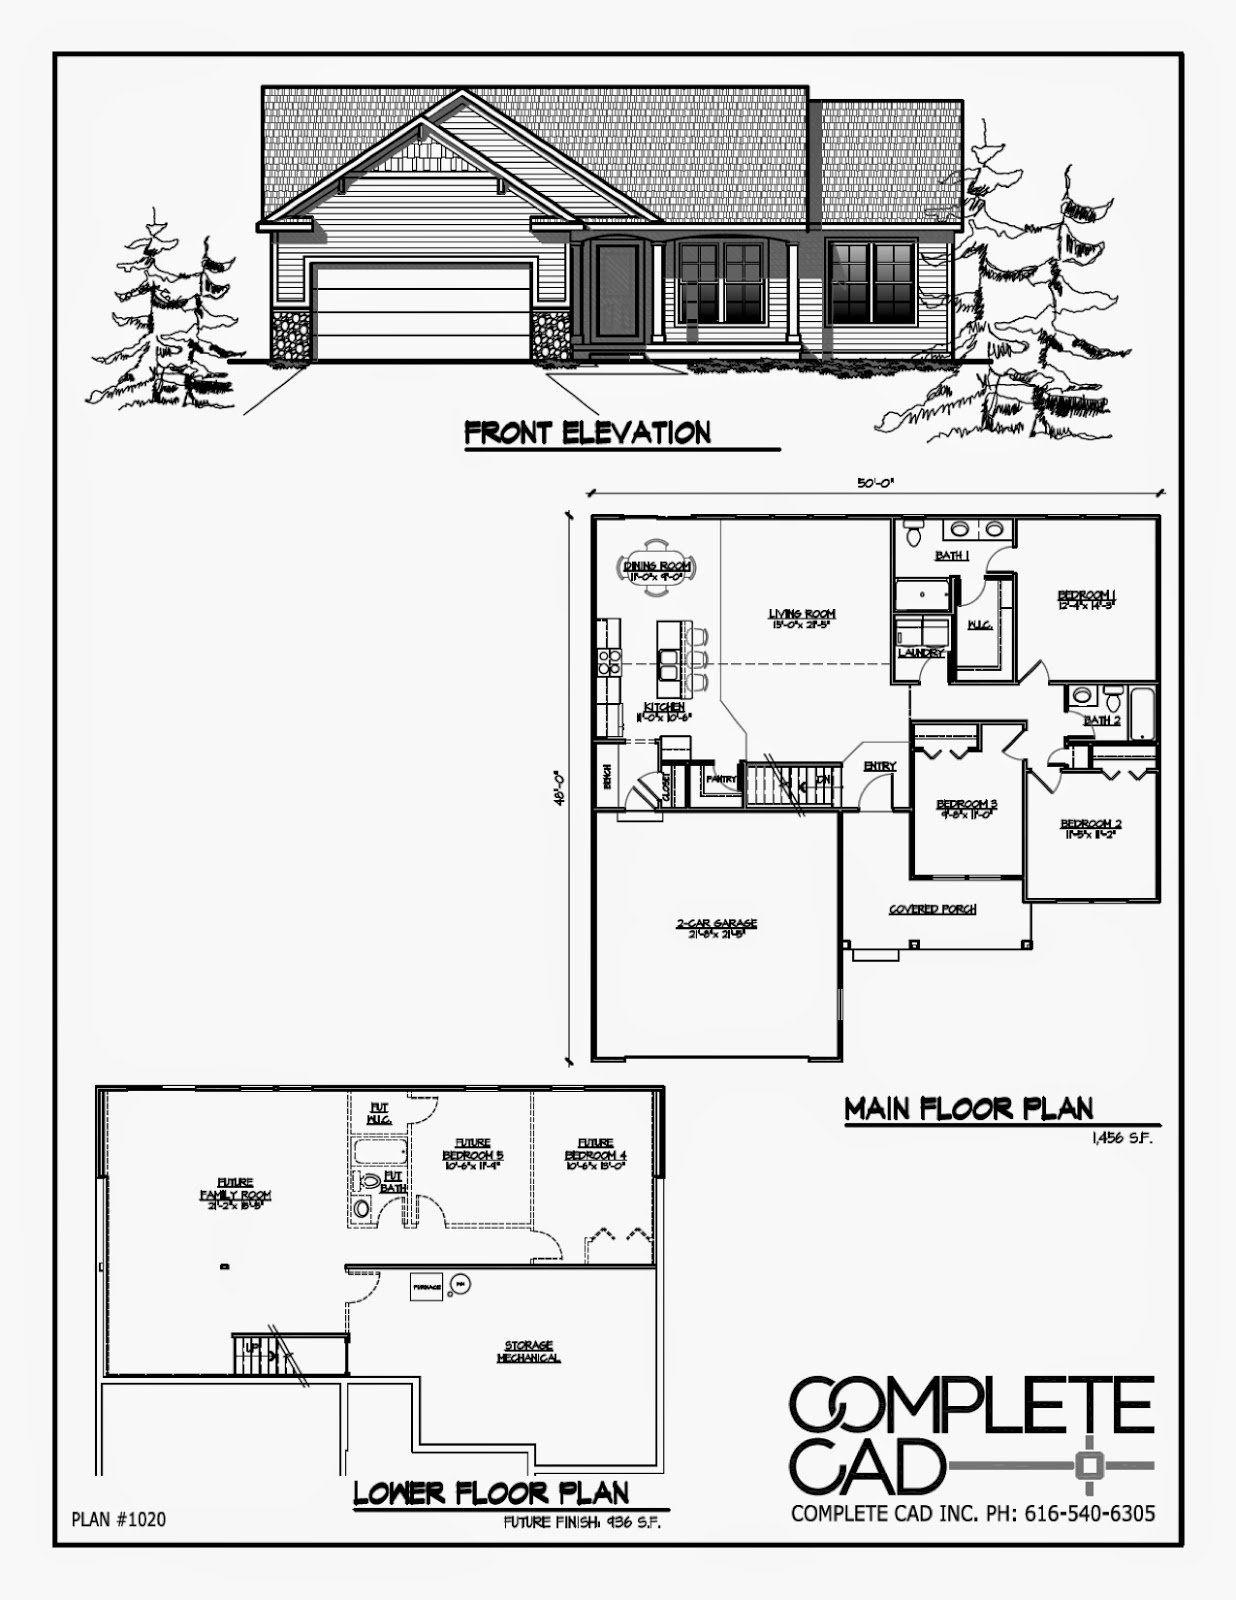 3 Bedroom Wheelchair Accessible House Plans